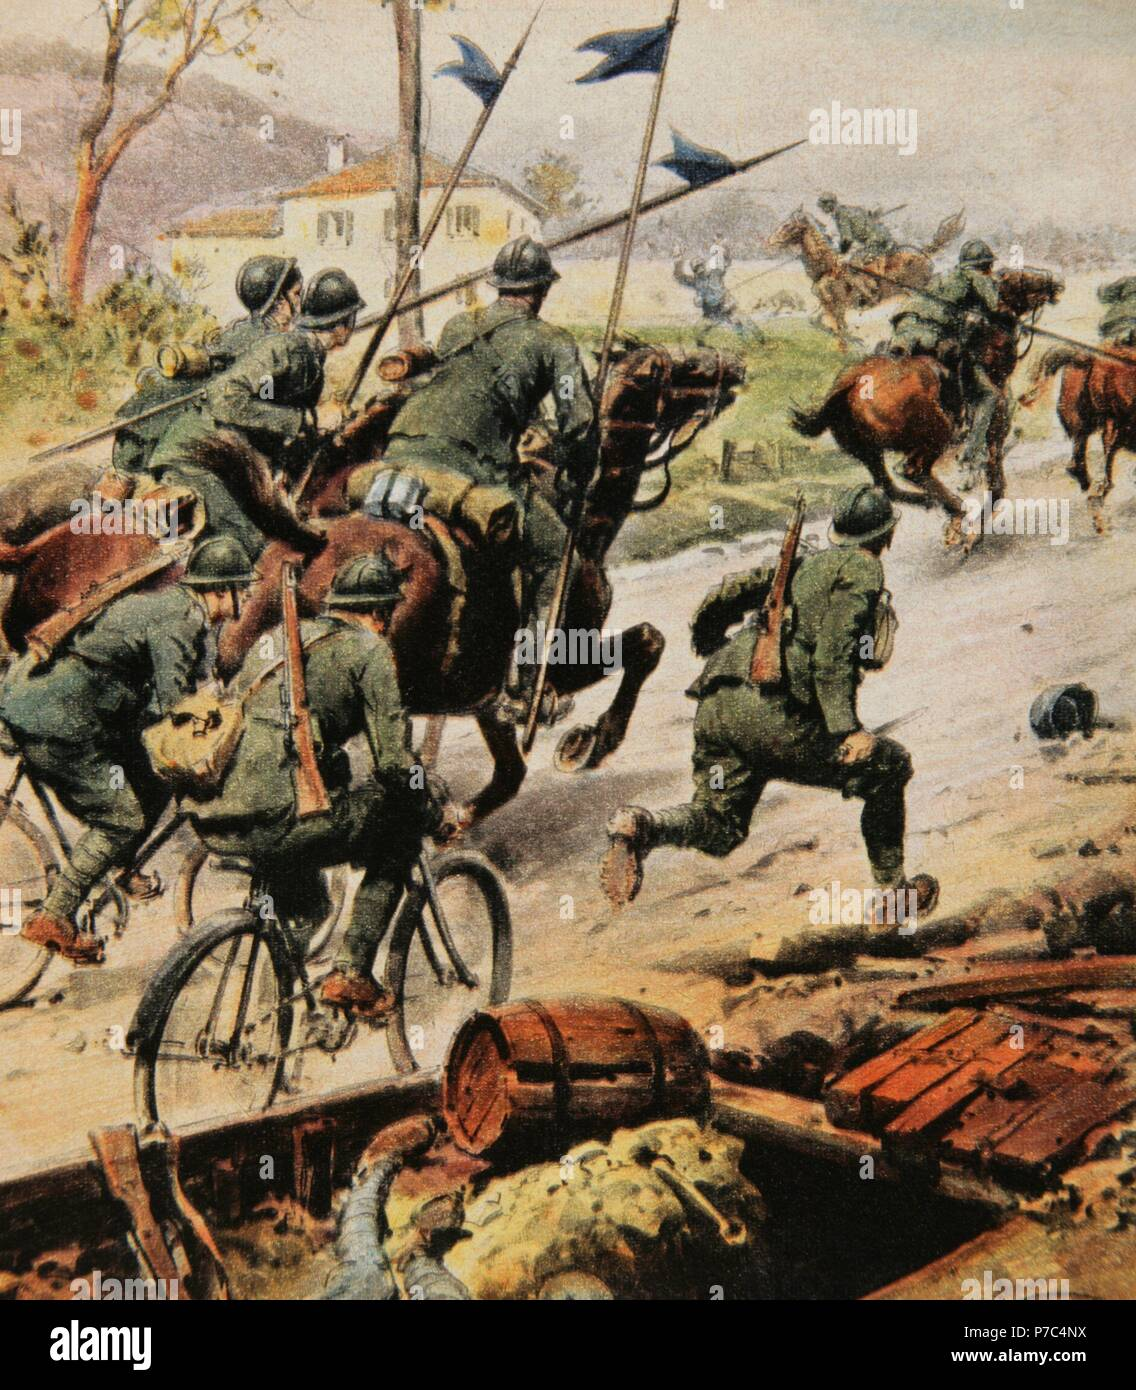 World War I (1914-1918). The Italian cavalry chases the enemy. Engraving in La Domenica del Corriere, Italy. - Stock Image